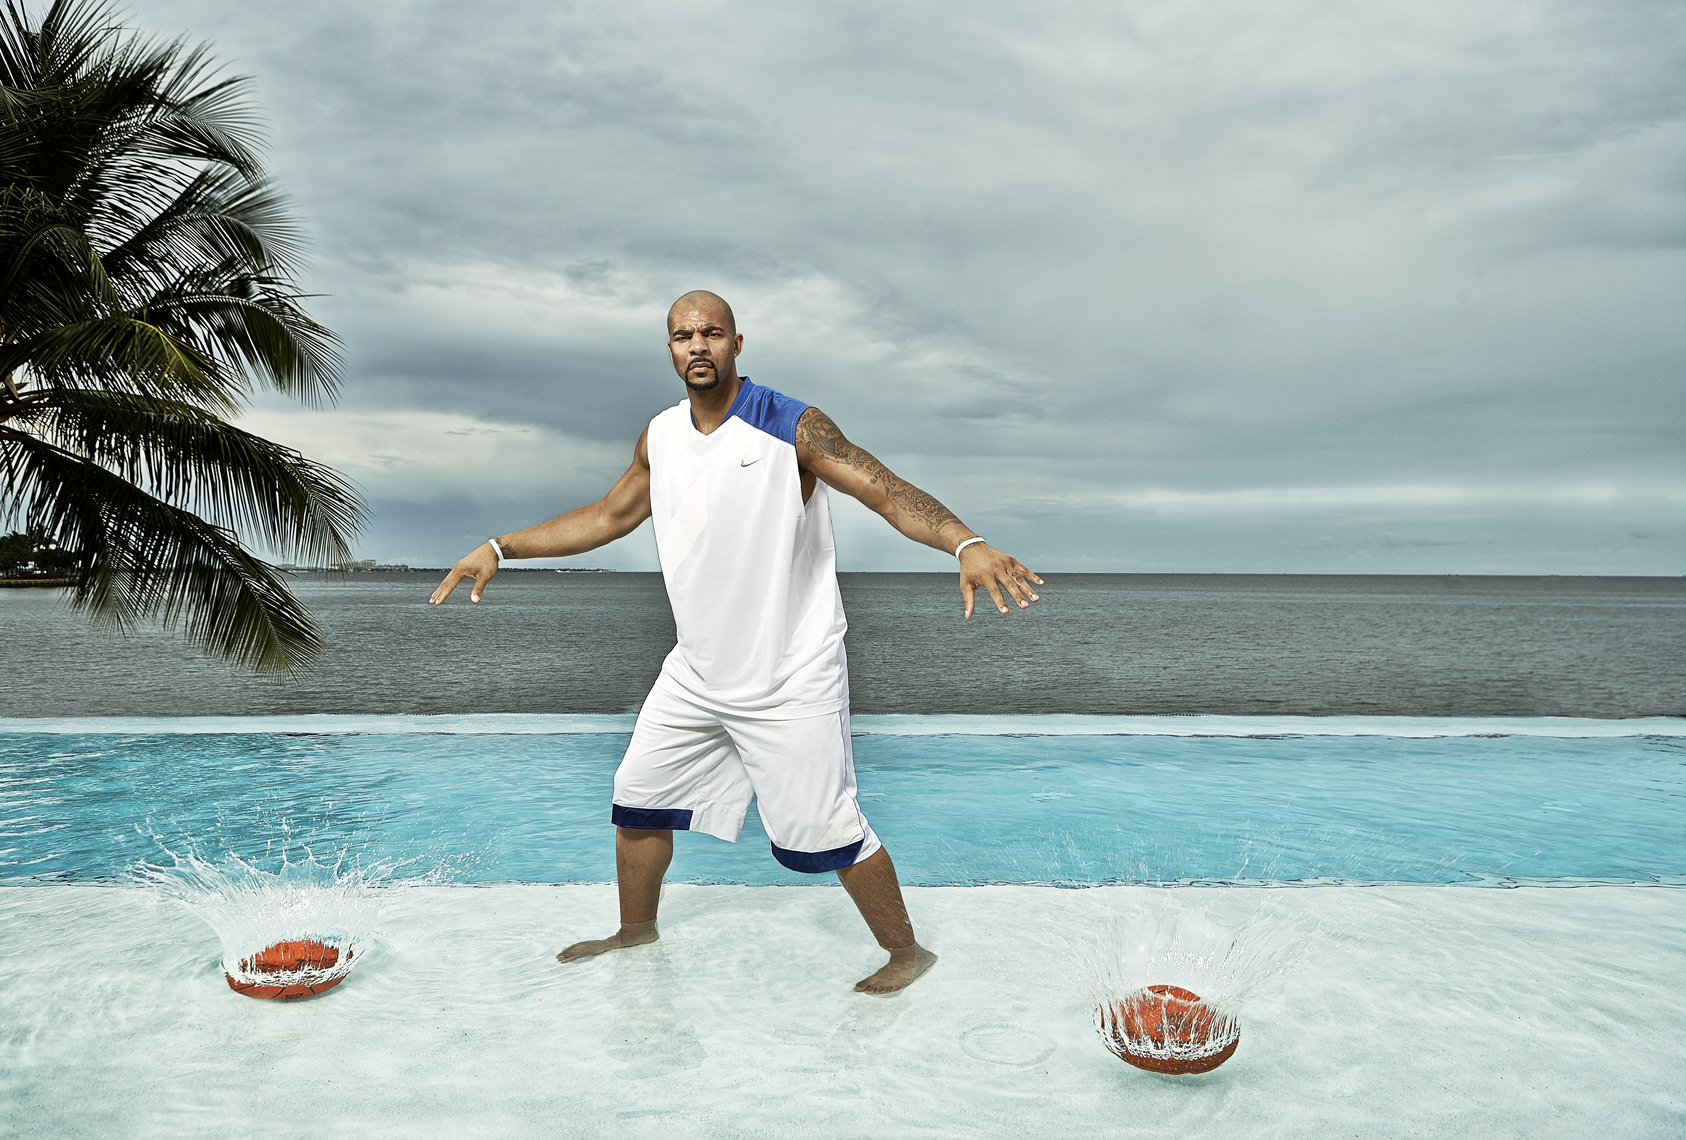 Carlos Boozer  | Chicago Bulls basketball player  |  Miami photographer Jeffery Salter